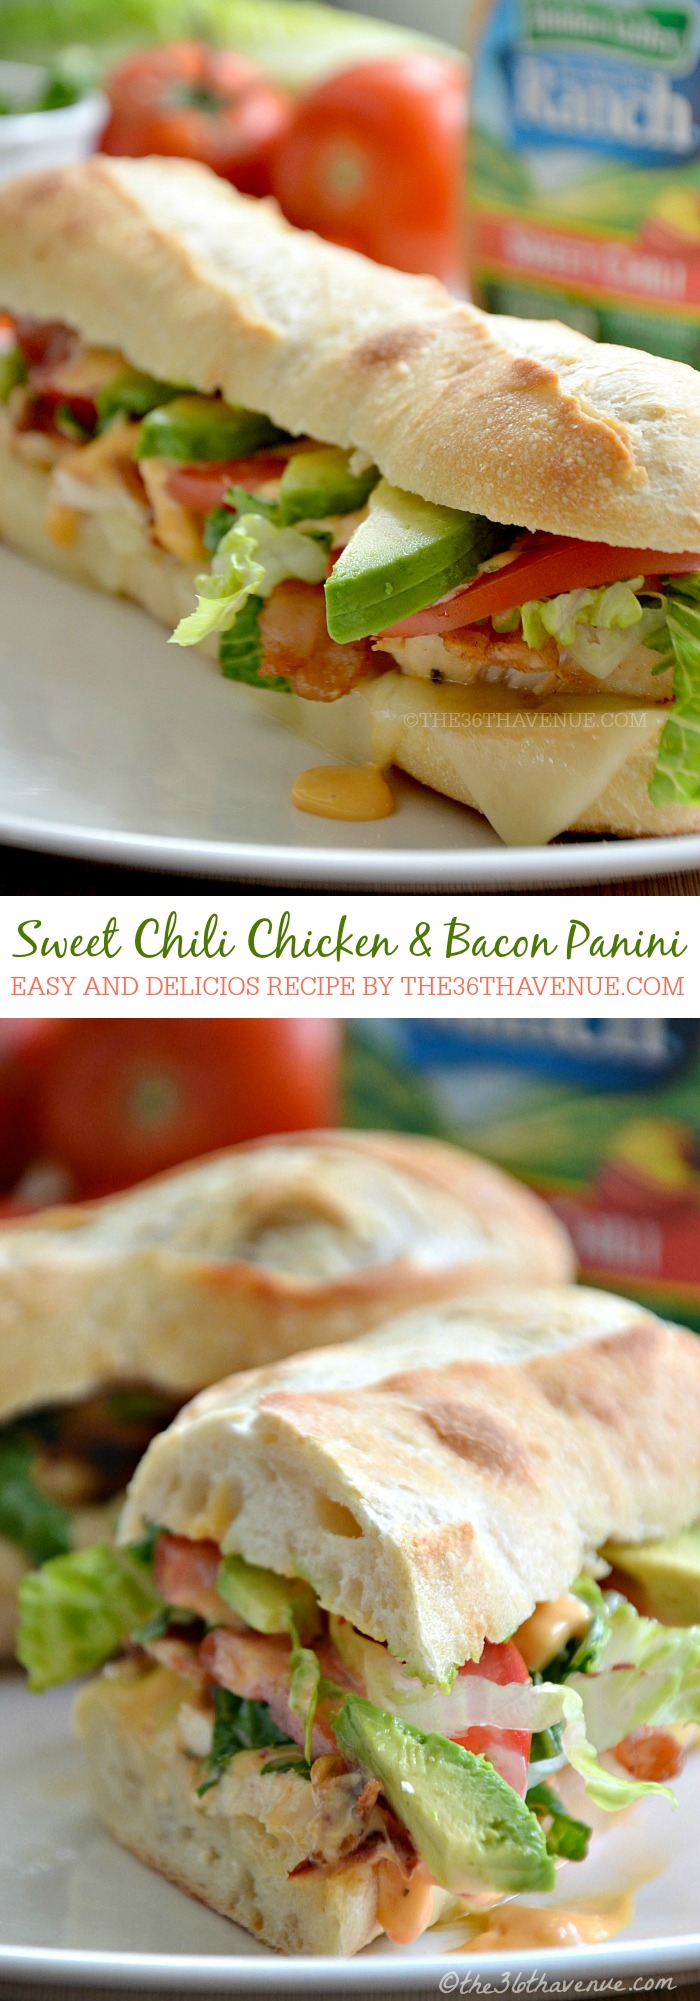 Recipes - Sweet Chili Chicken and Bacon Lettuce Wrap at the36thavenue.com ...Pin it now and make it later!